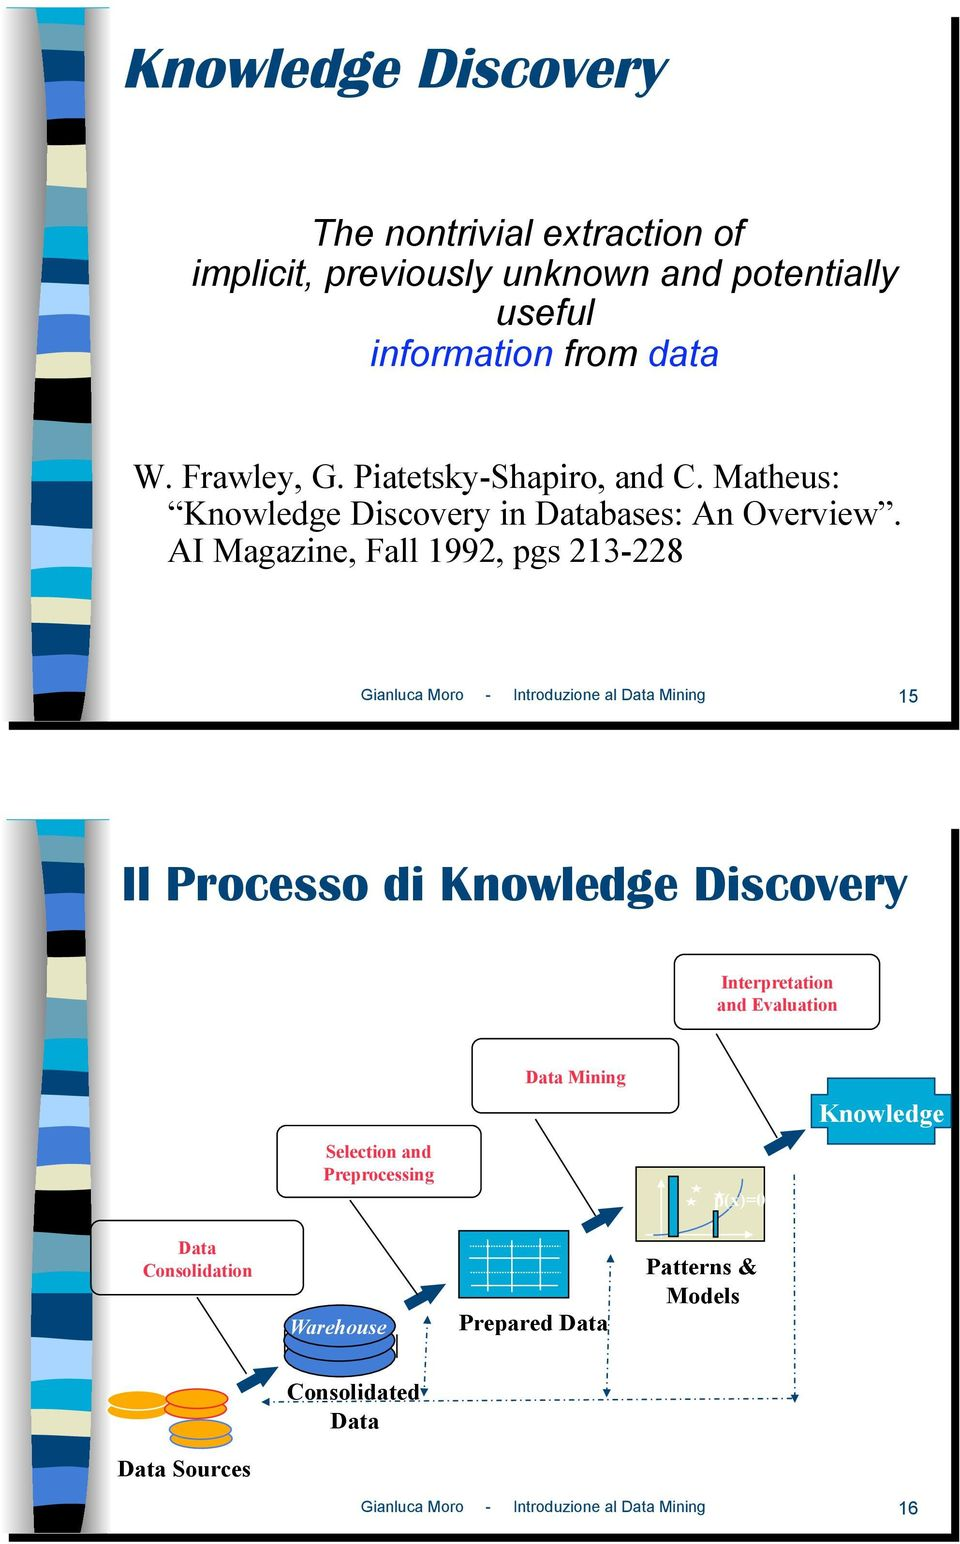 AI Magazine, Fall 1992, pgs 213-228 Gianluca Moro - Introduzione al Data Mining 15 Il Processo di Knowledge Discovery Interpretation and